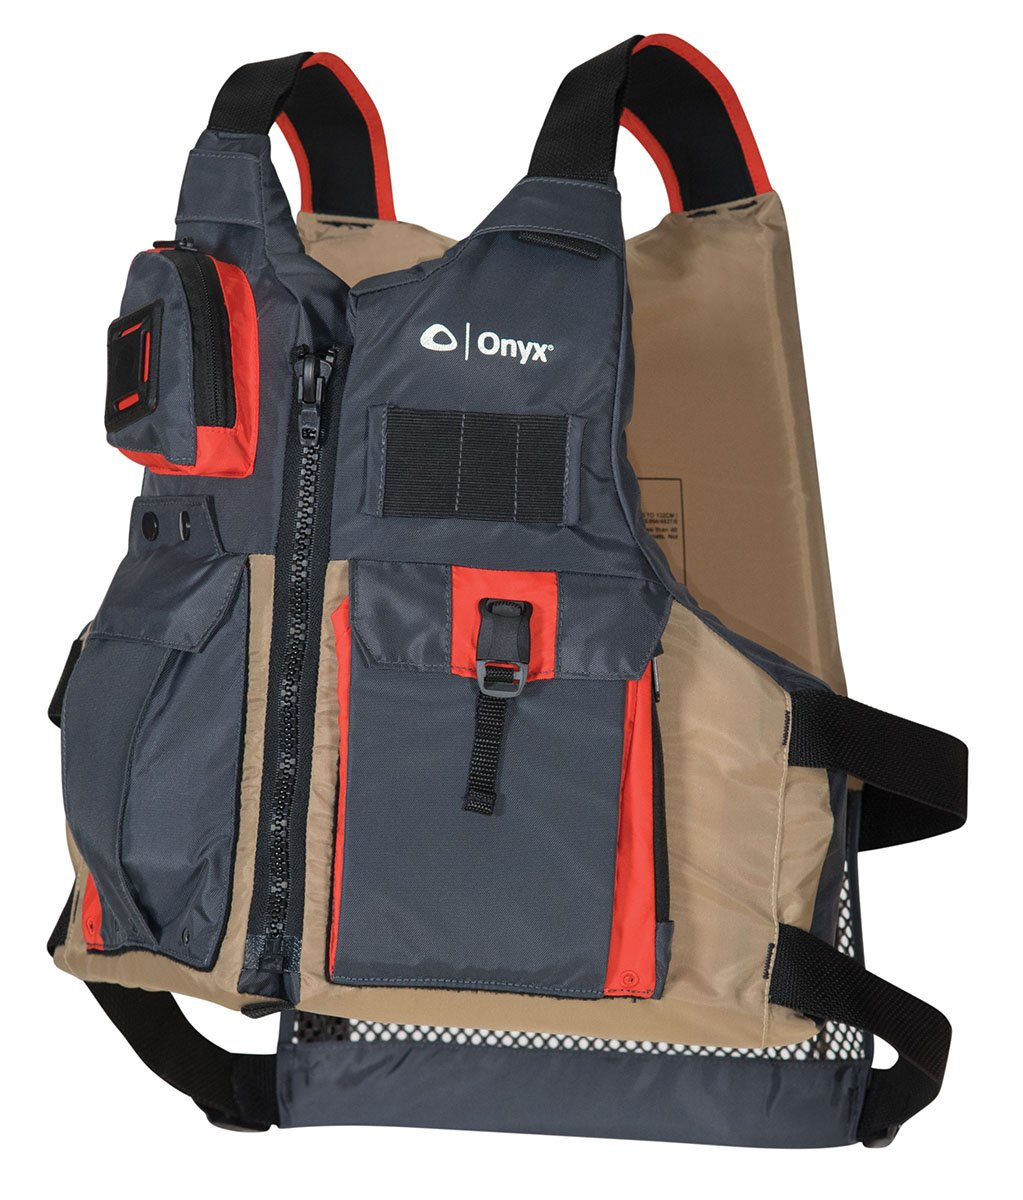 Top 10 Best Life Jackets For Fishing